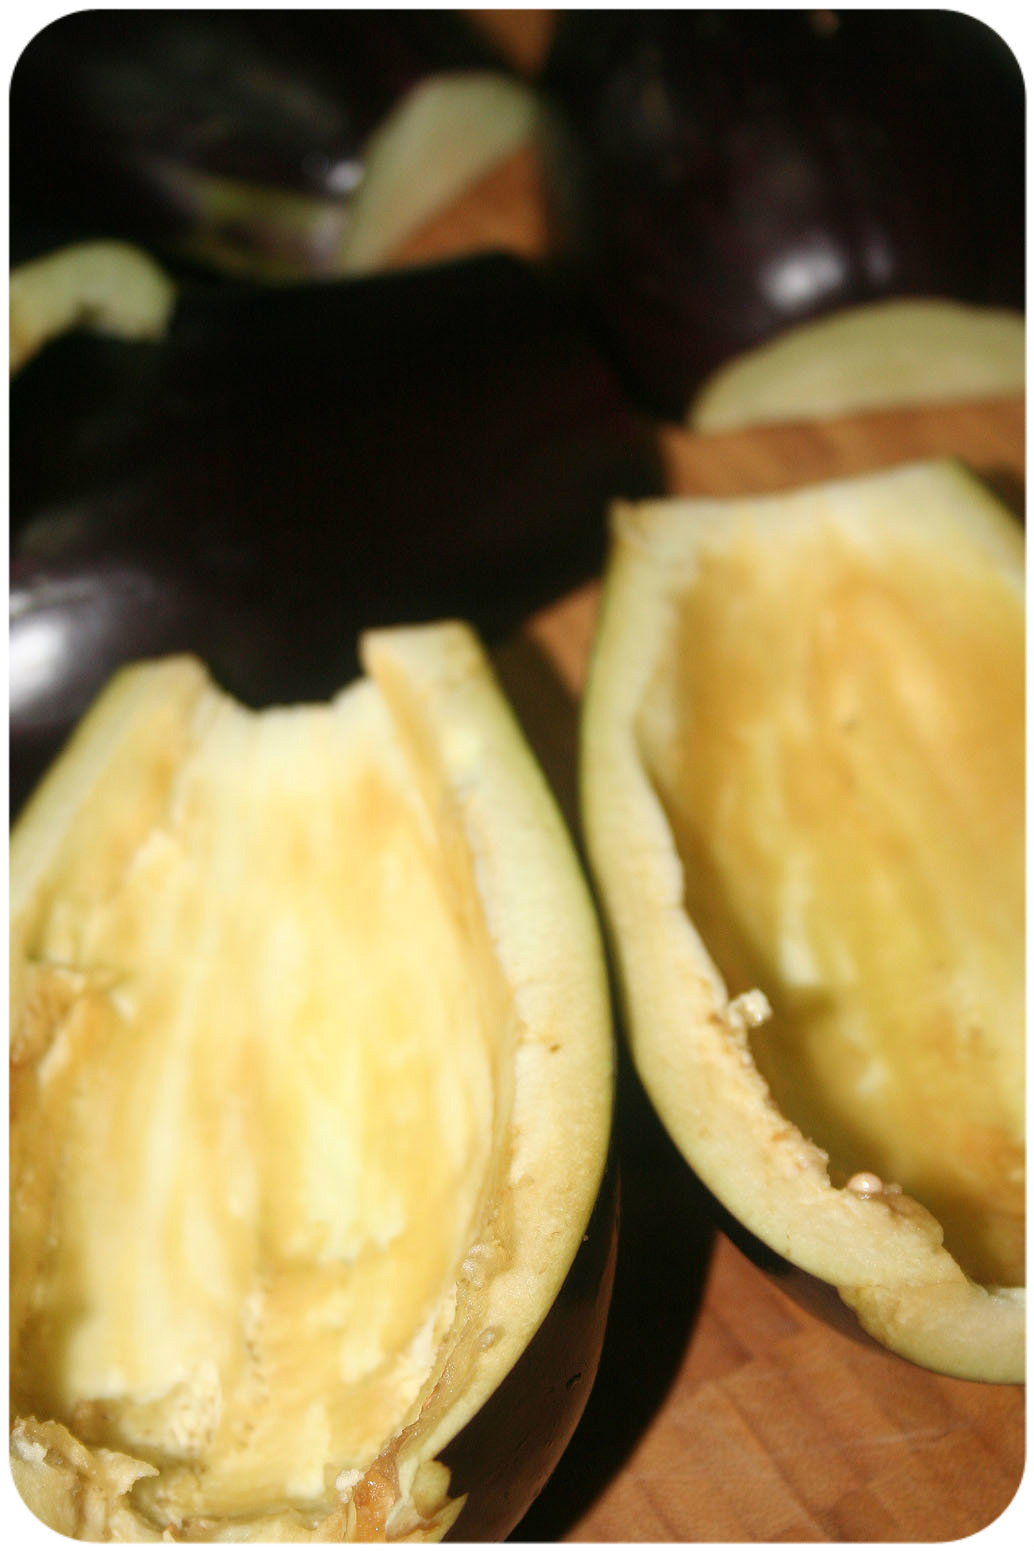 Hollowed eggplant